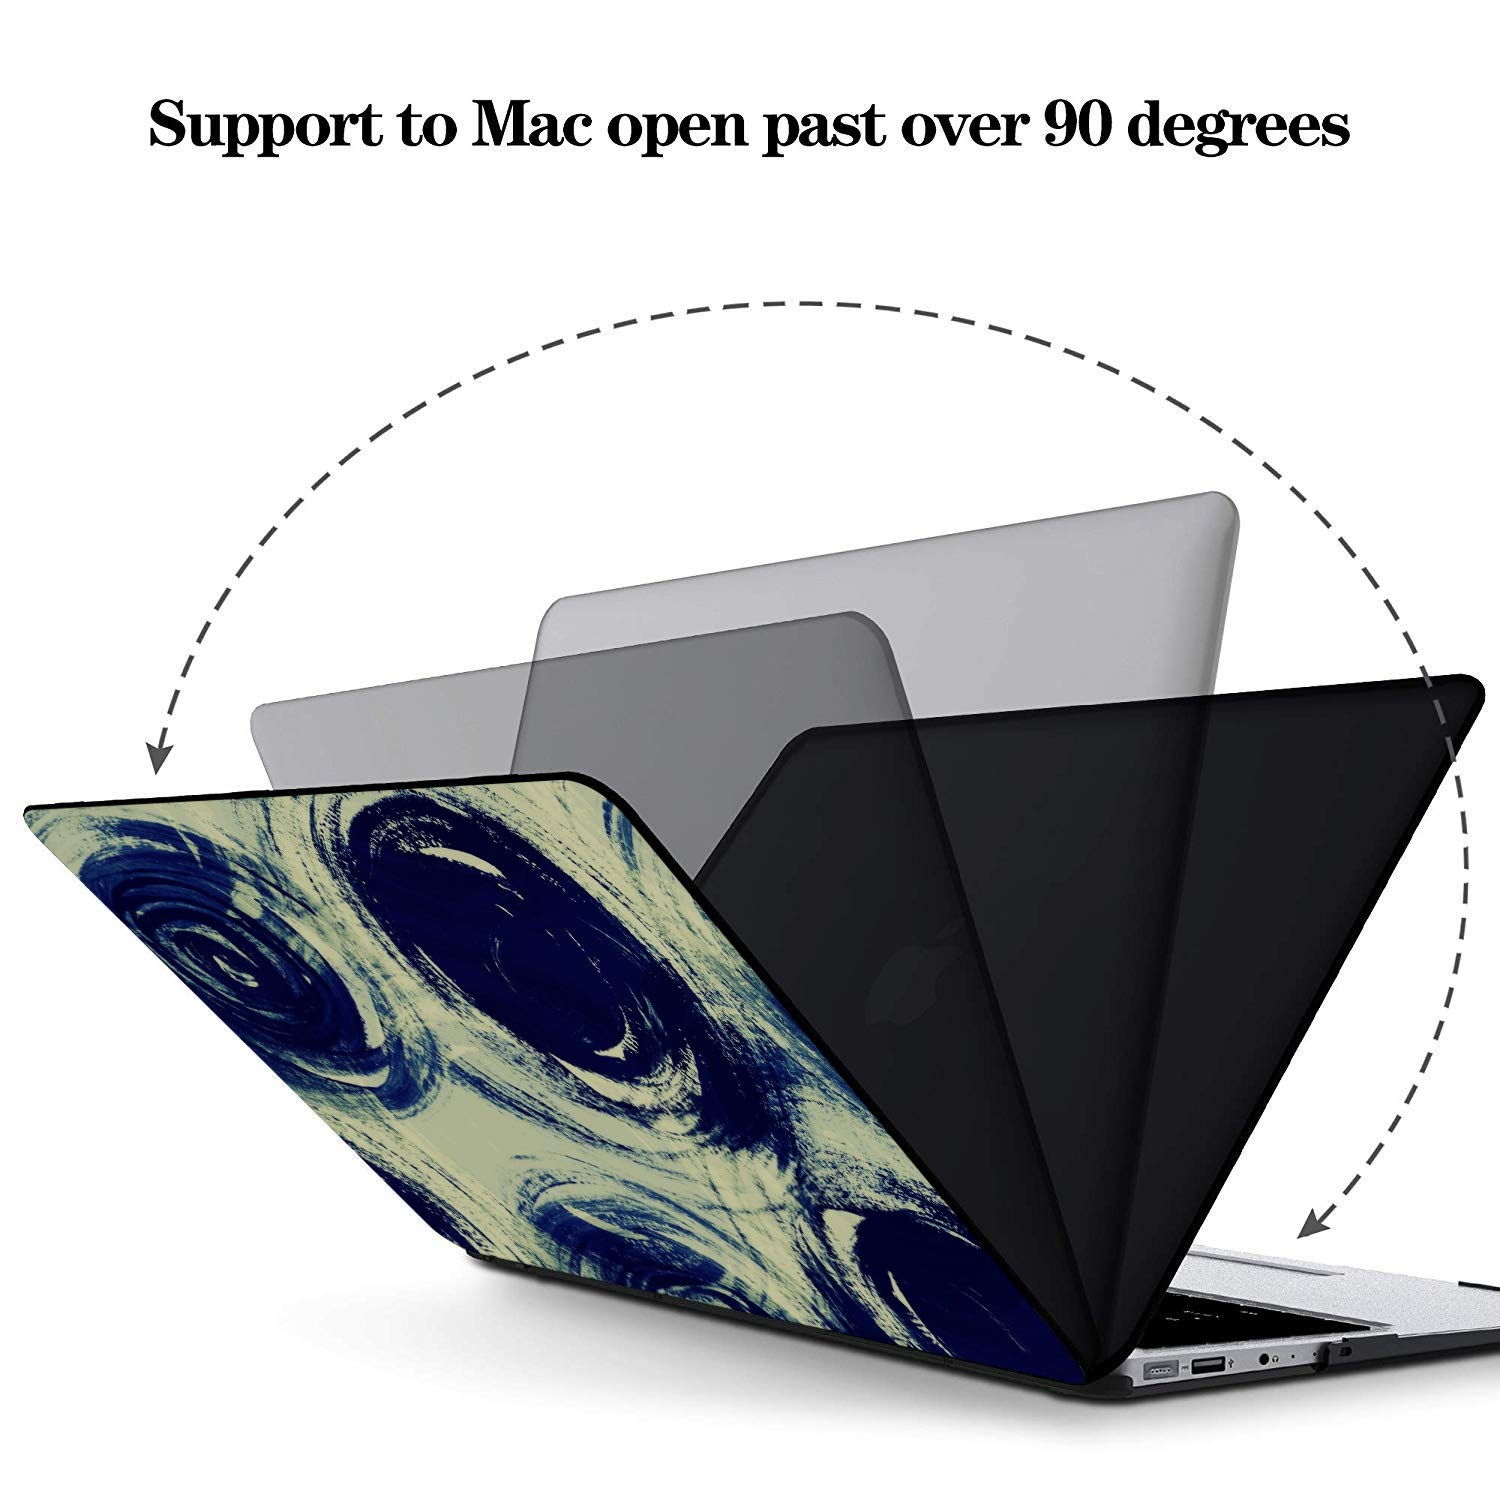 MacBook Pro Case 2015 Shining Colorful Romantic Art Gift Plastic Hard Shell Compatible Mac Air 11 Pro 13 15 Mac Covers Protection for MacBook 2016-2019 Version